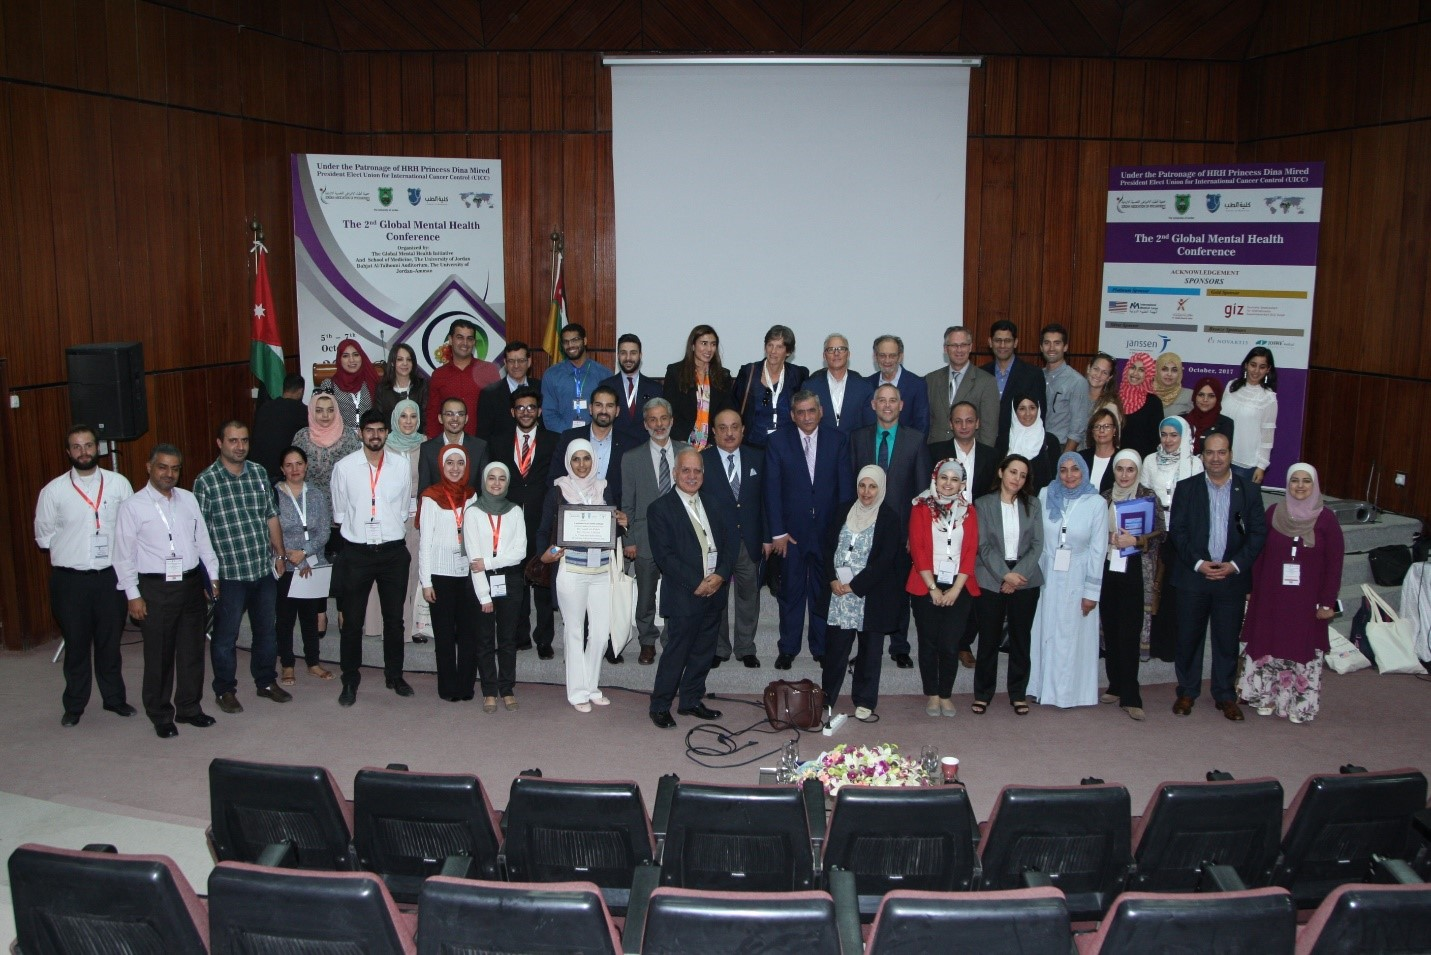 Group picture of organizers, speakers, and foreign guests of the 2017 conference